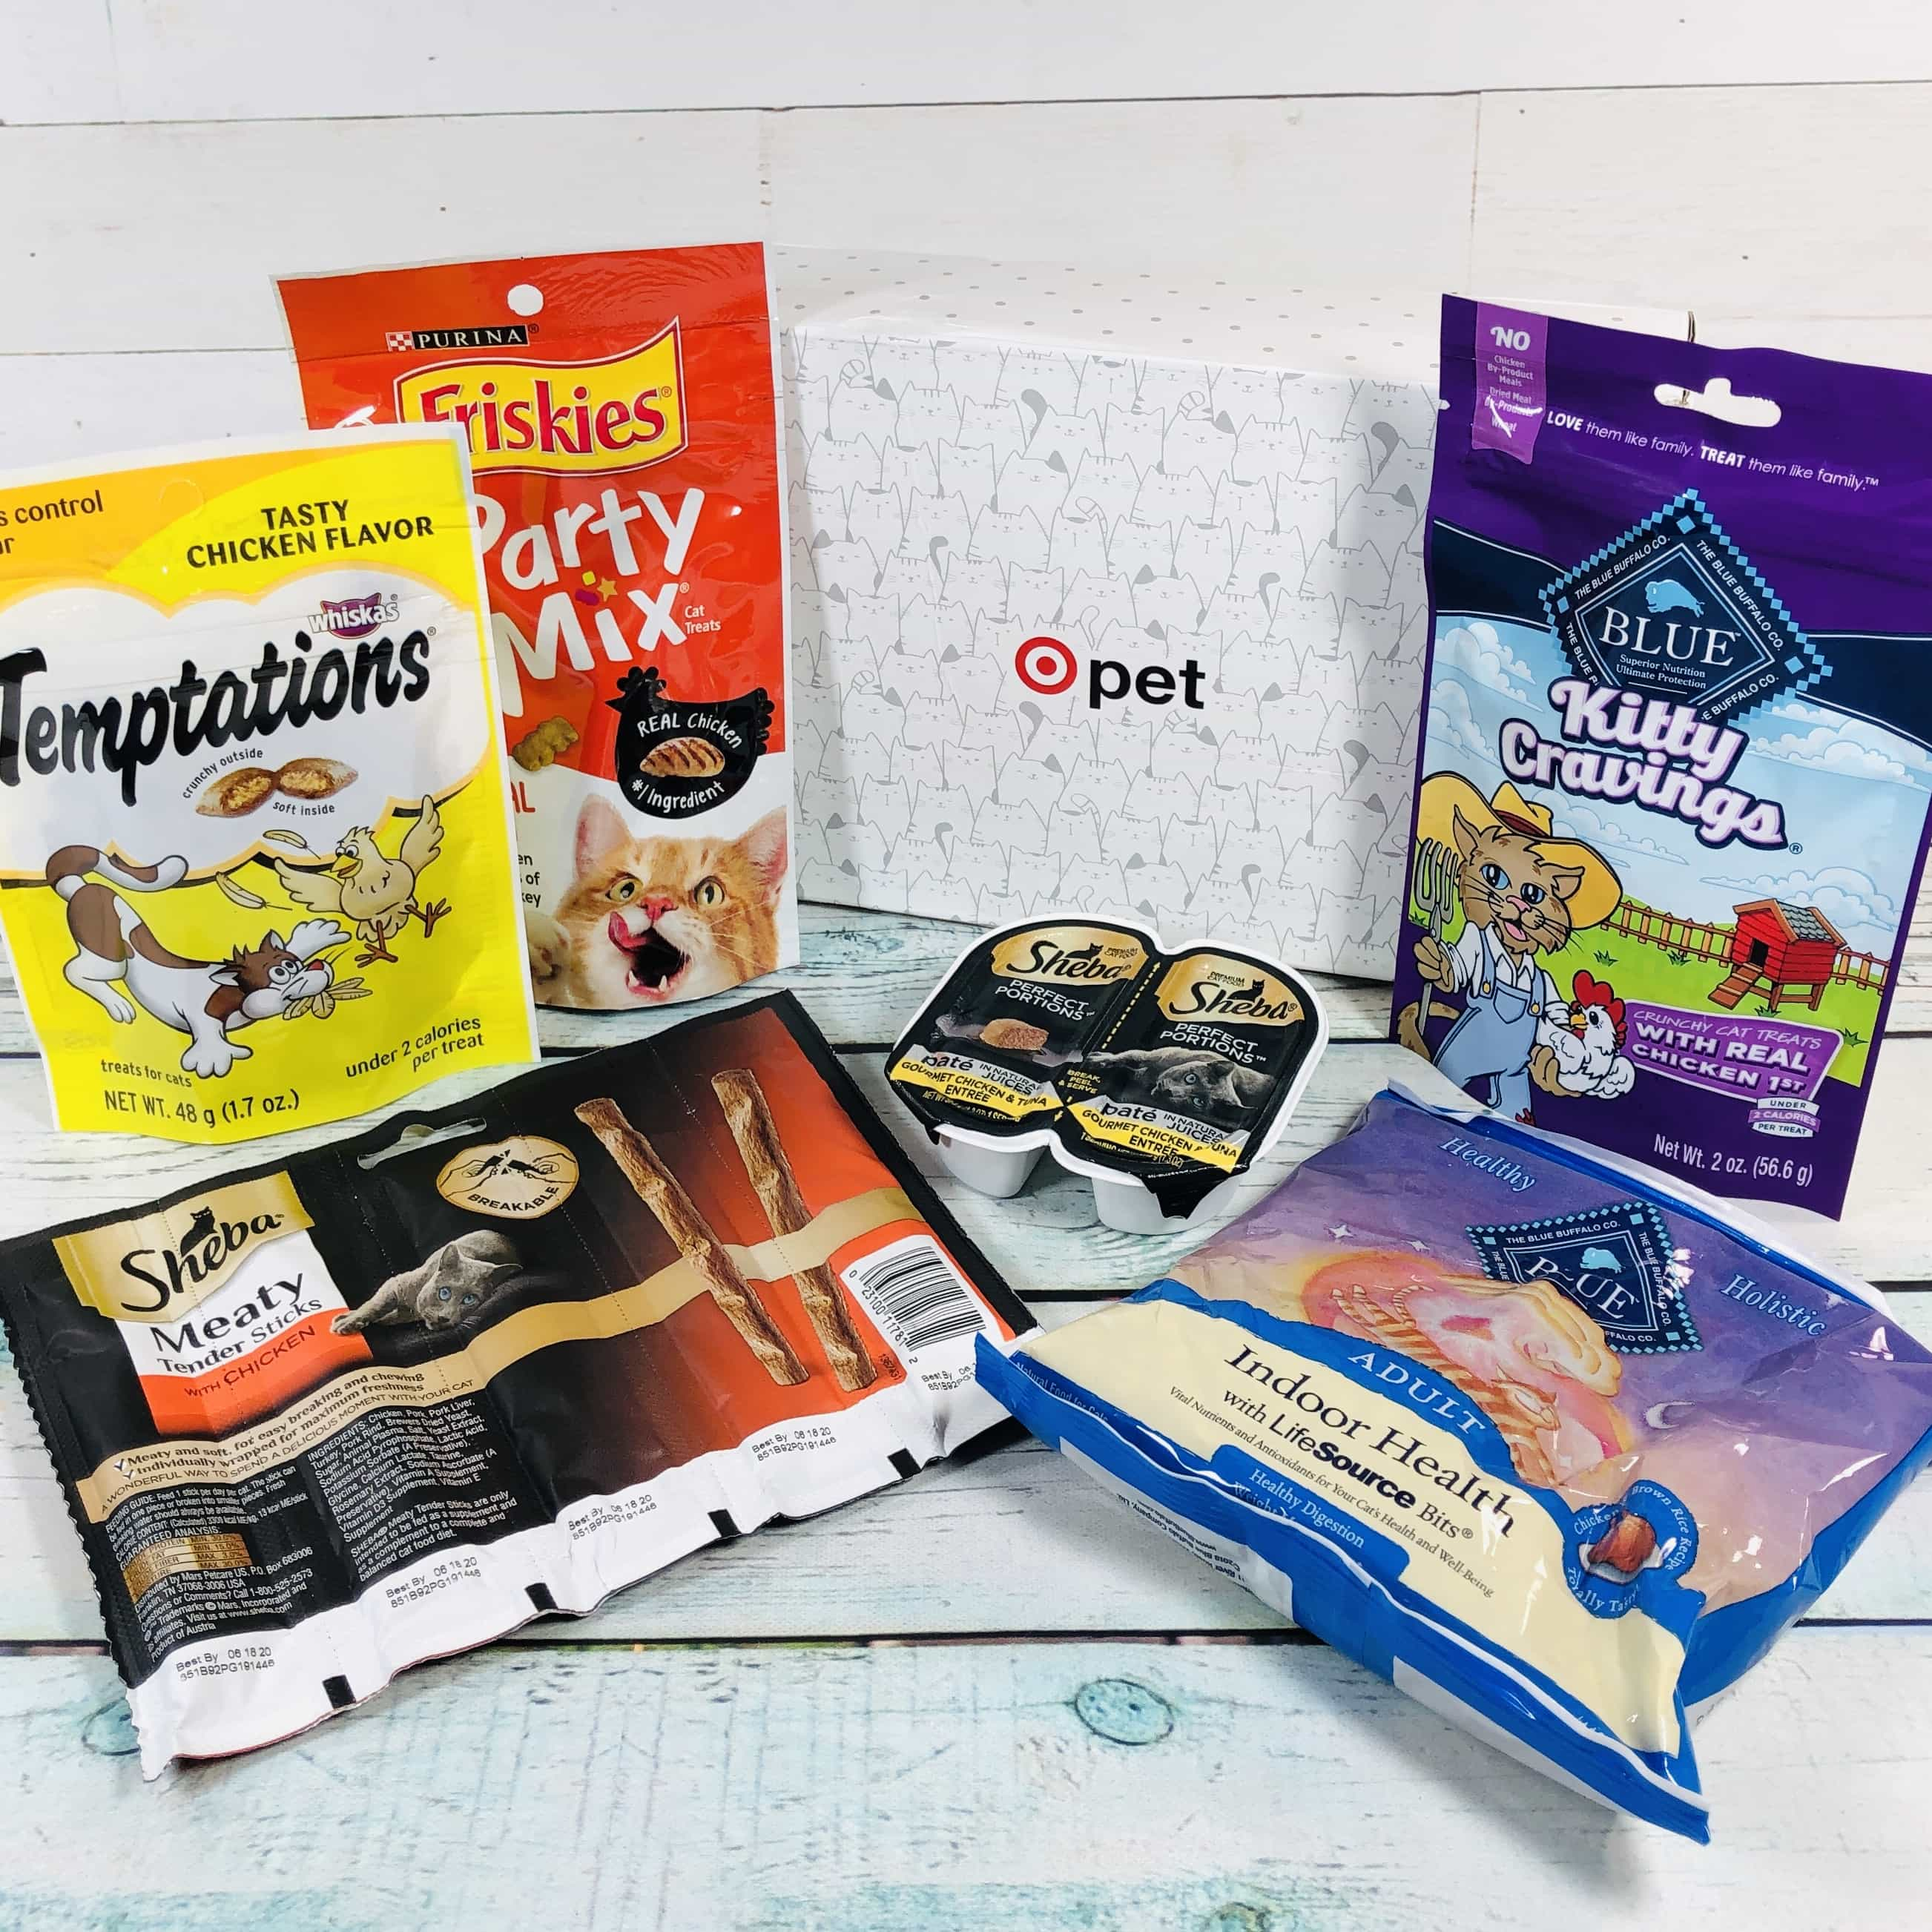 Target Cat Pet Box Subscription Box Review – May 2019